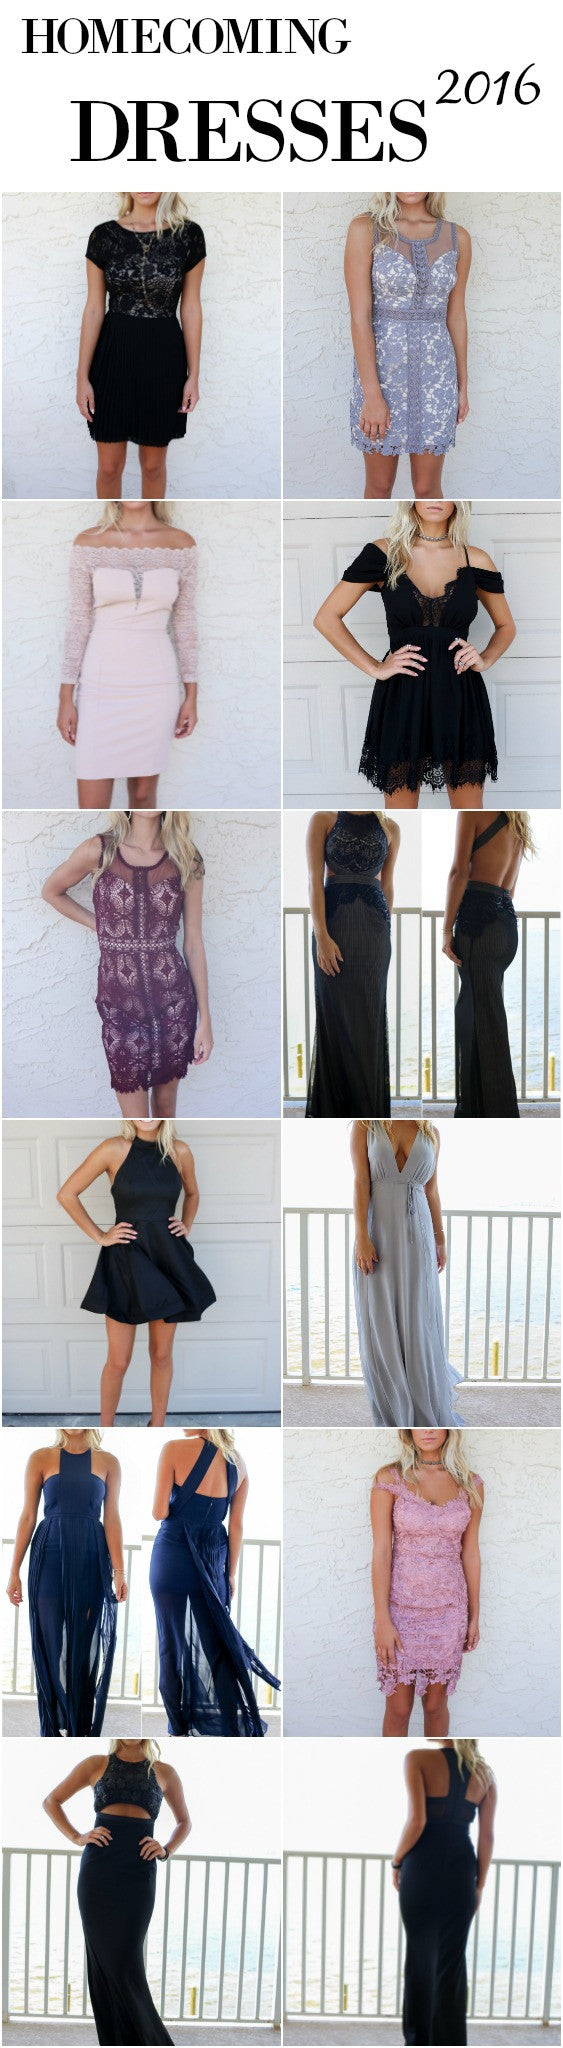 Homecoming Dresses 2016